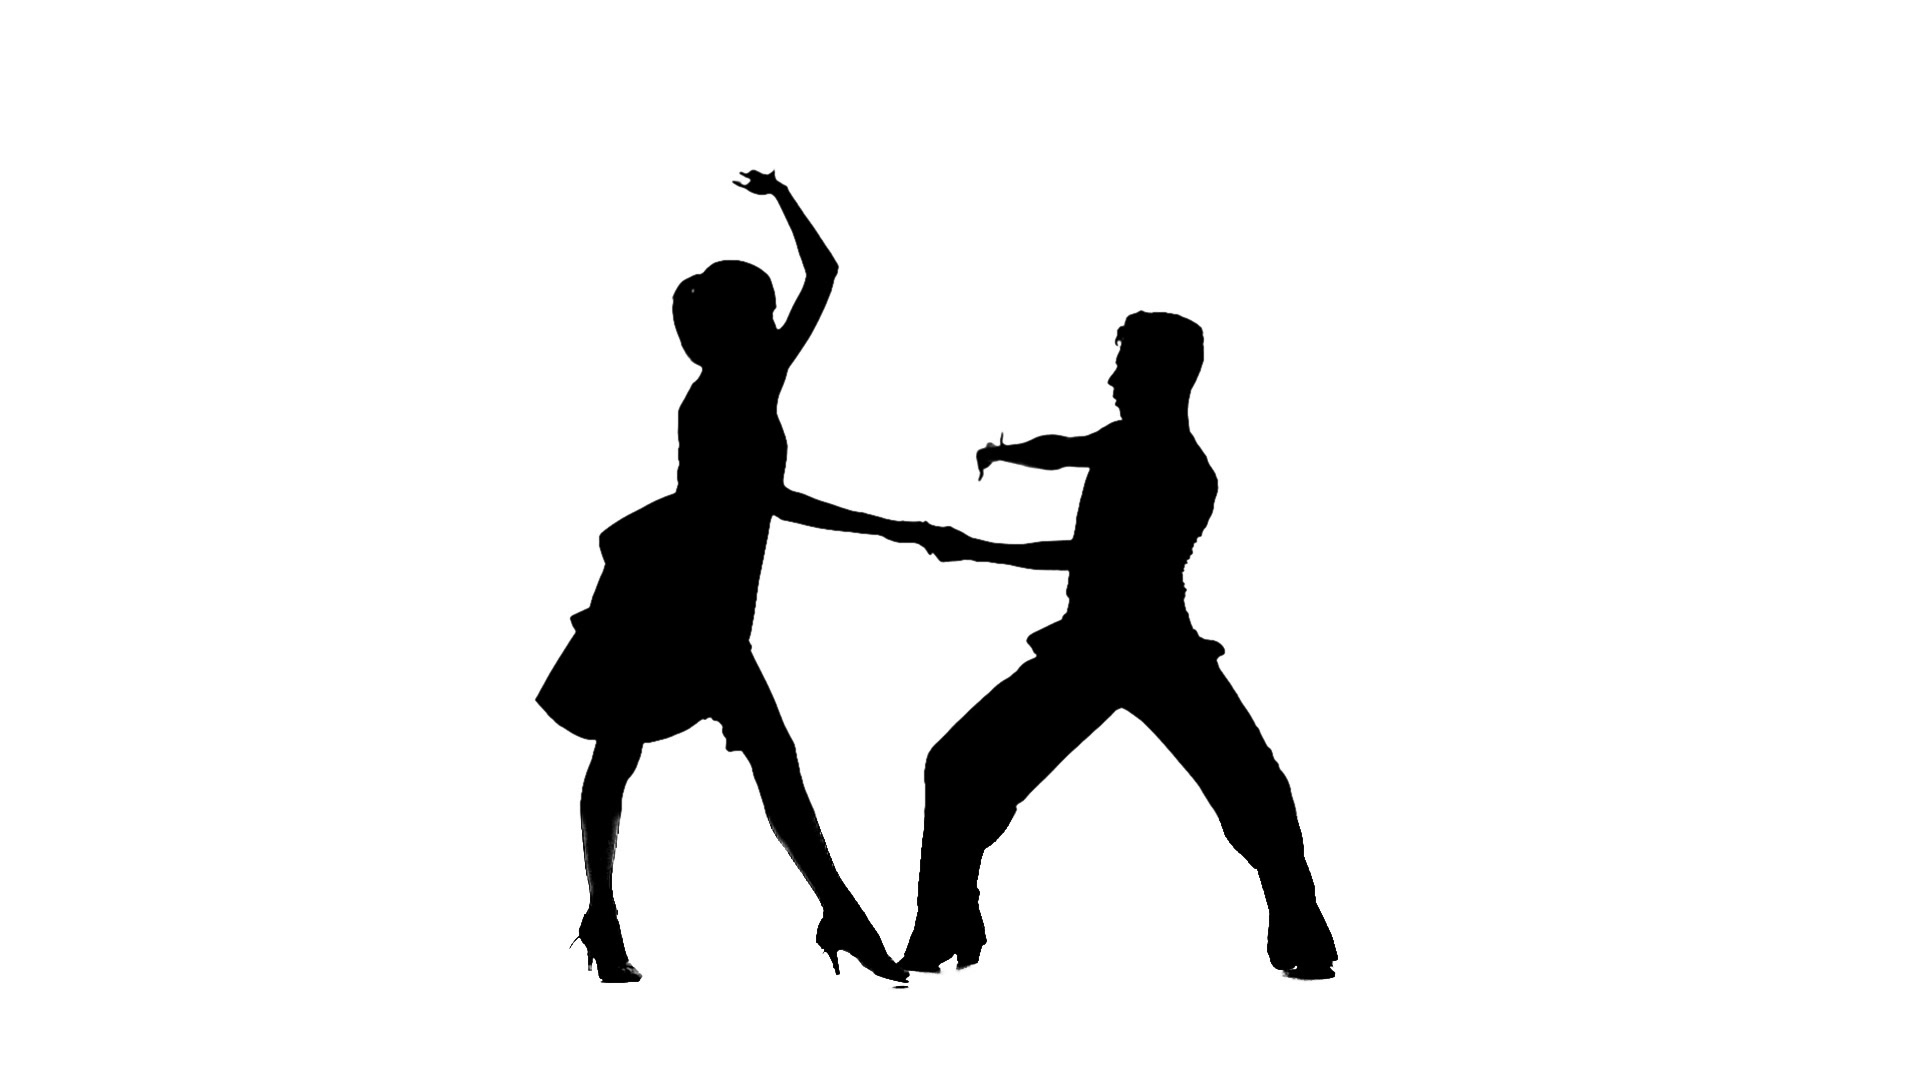 1920x1080 Silhouette Professional Pair Dancing Jive On White Background